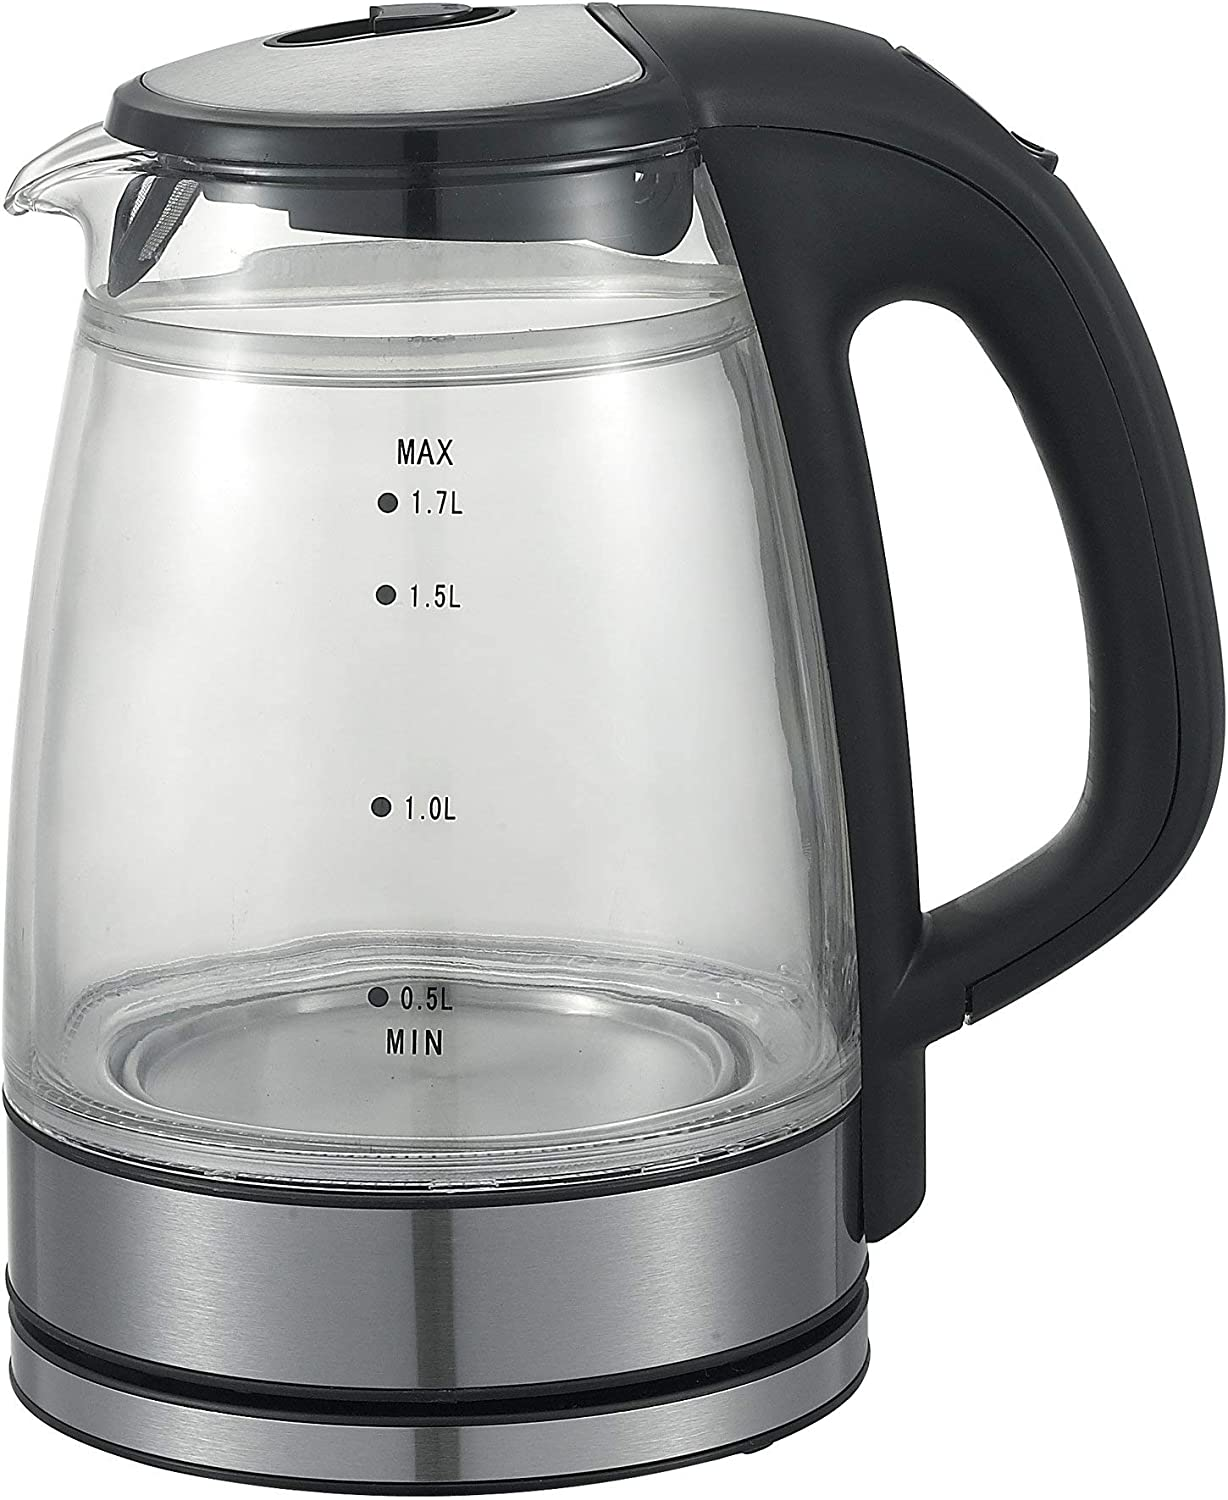 Factory Store Queen Sense Electric Double Wall Glass Kettle Coffee Pot 1.7 Liter Cordless with LED Light BPA-Free with Auto Shut-Off, and Boil-Dry Protection GK1501